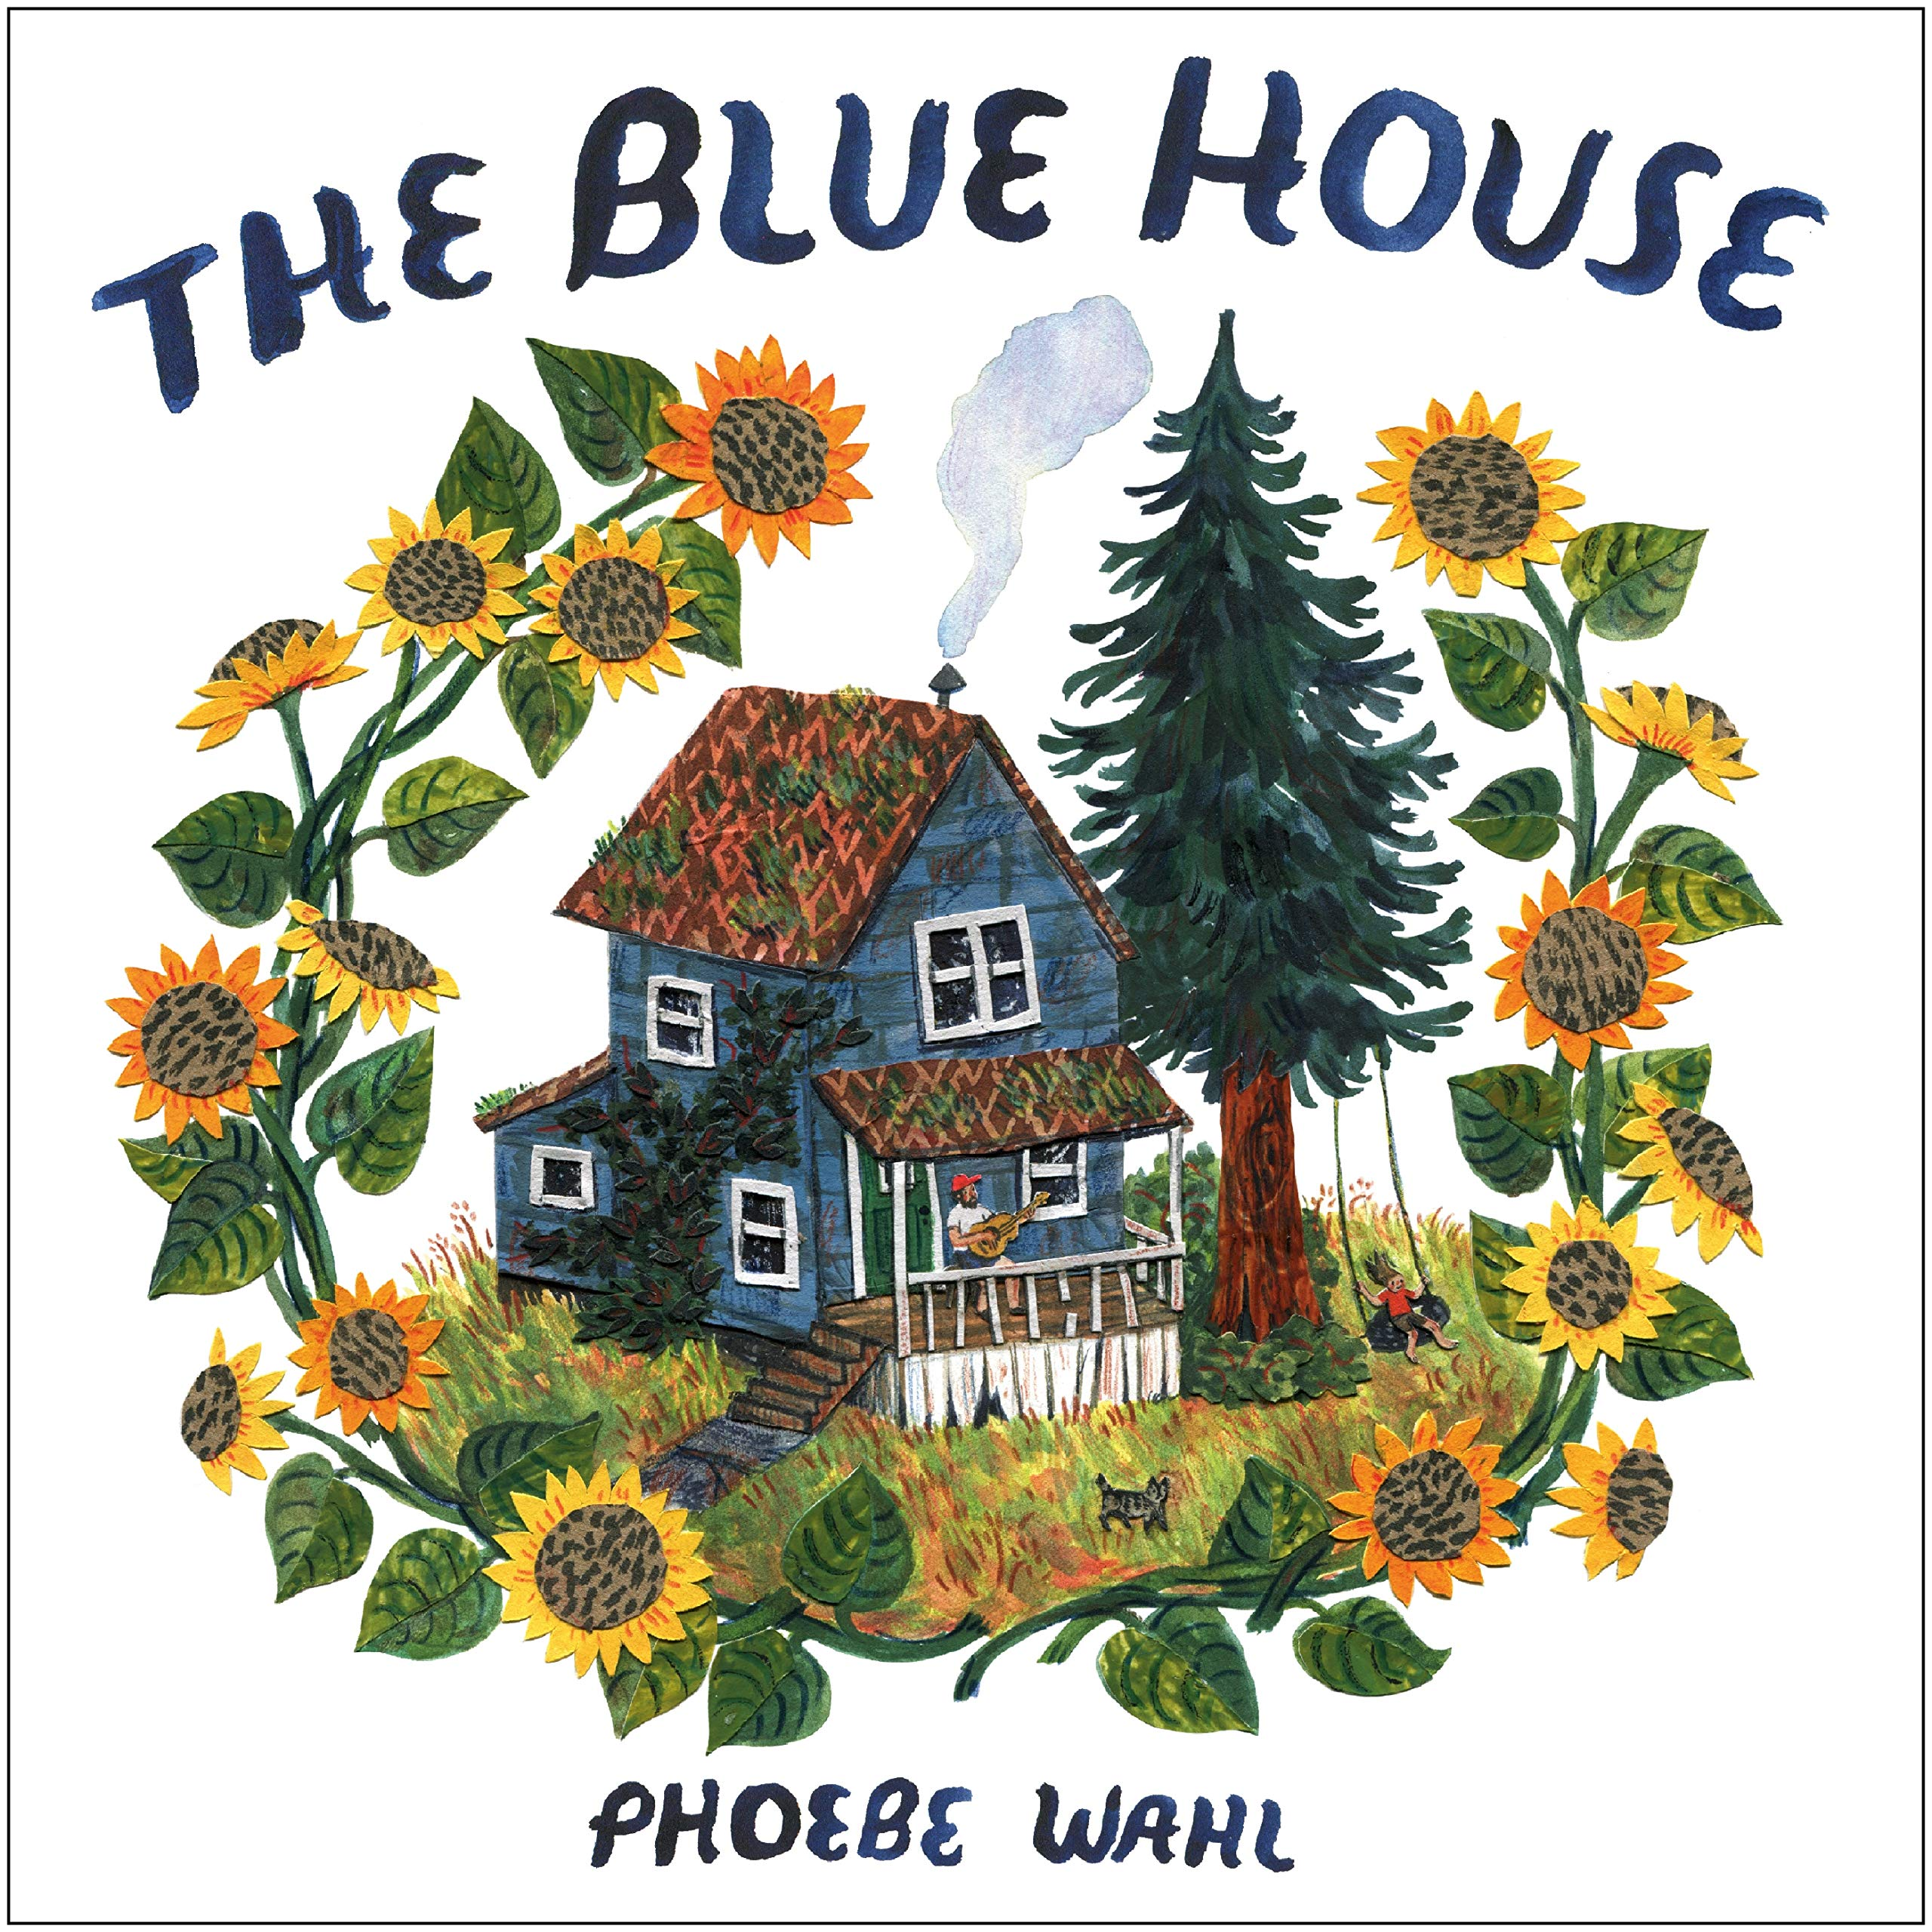 The Blue House: Wahl, Phoebe: 9781984893369: Amazon.com: Books